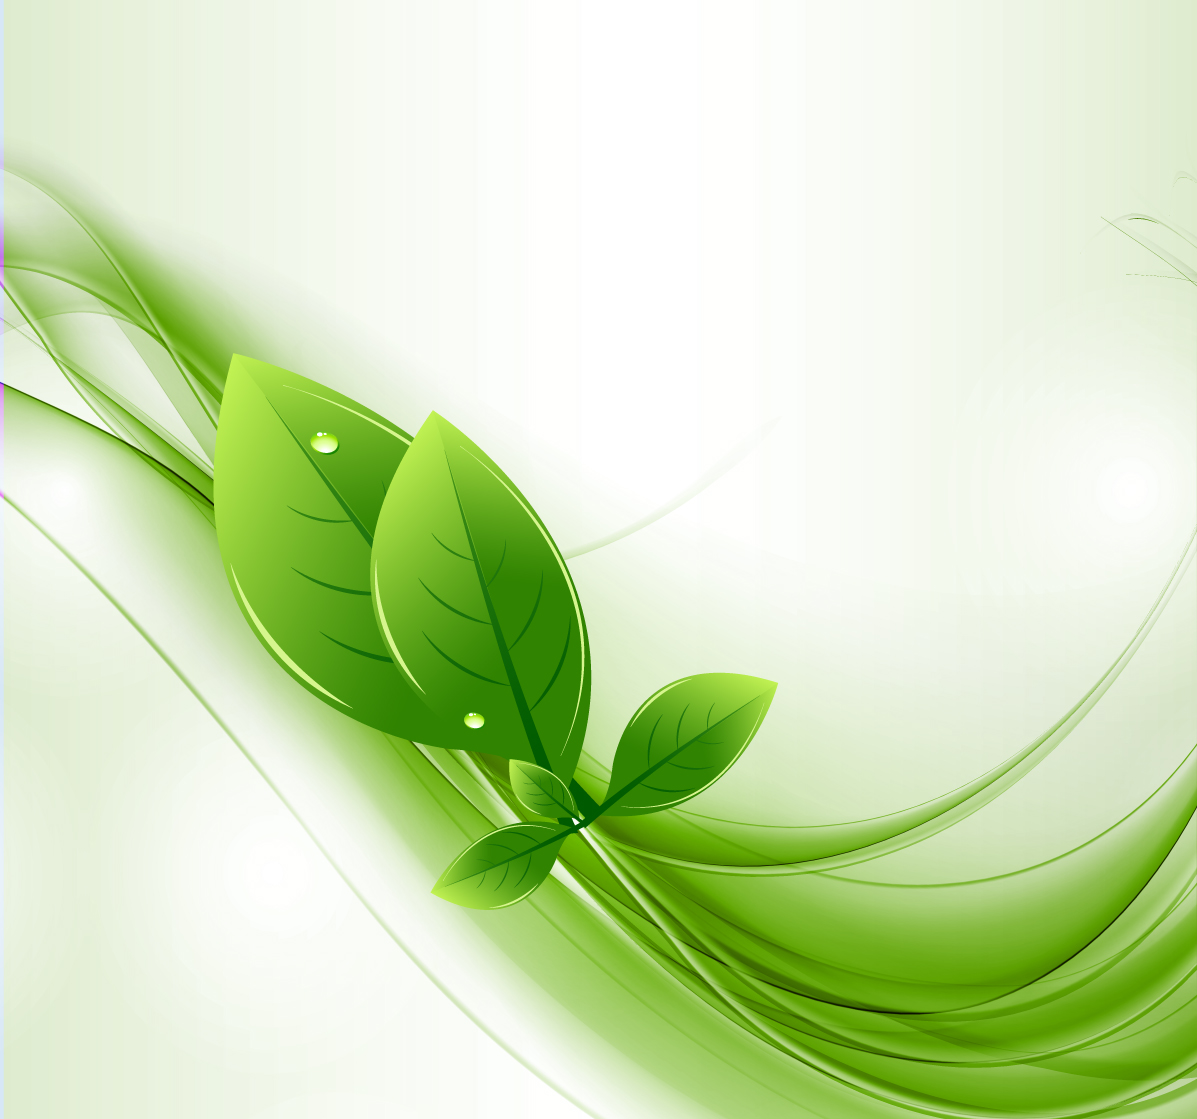 Green Eco-Leaf Vector Image